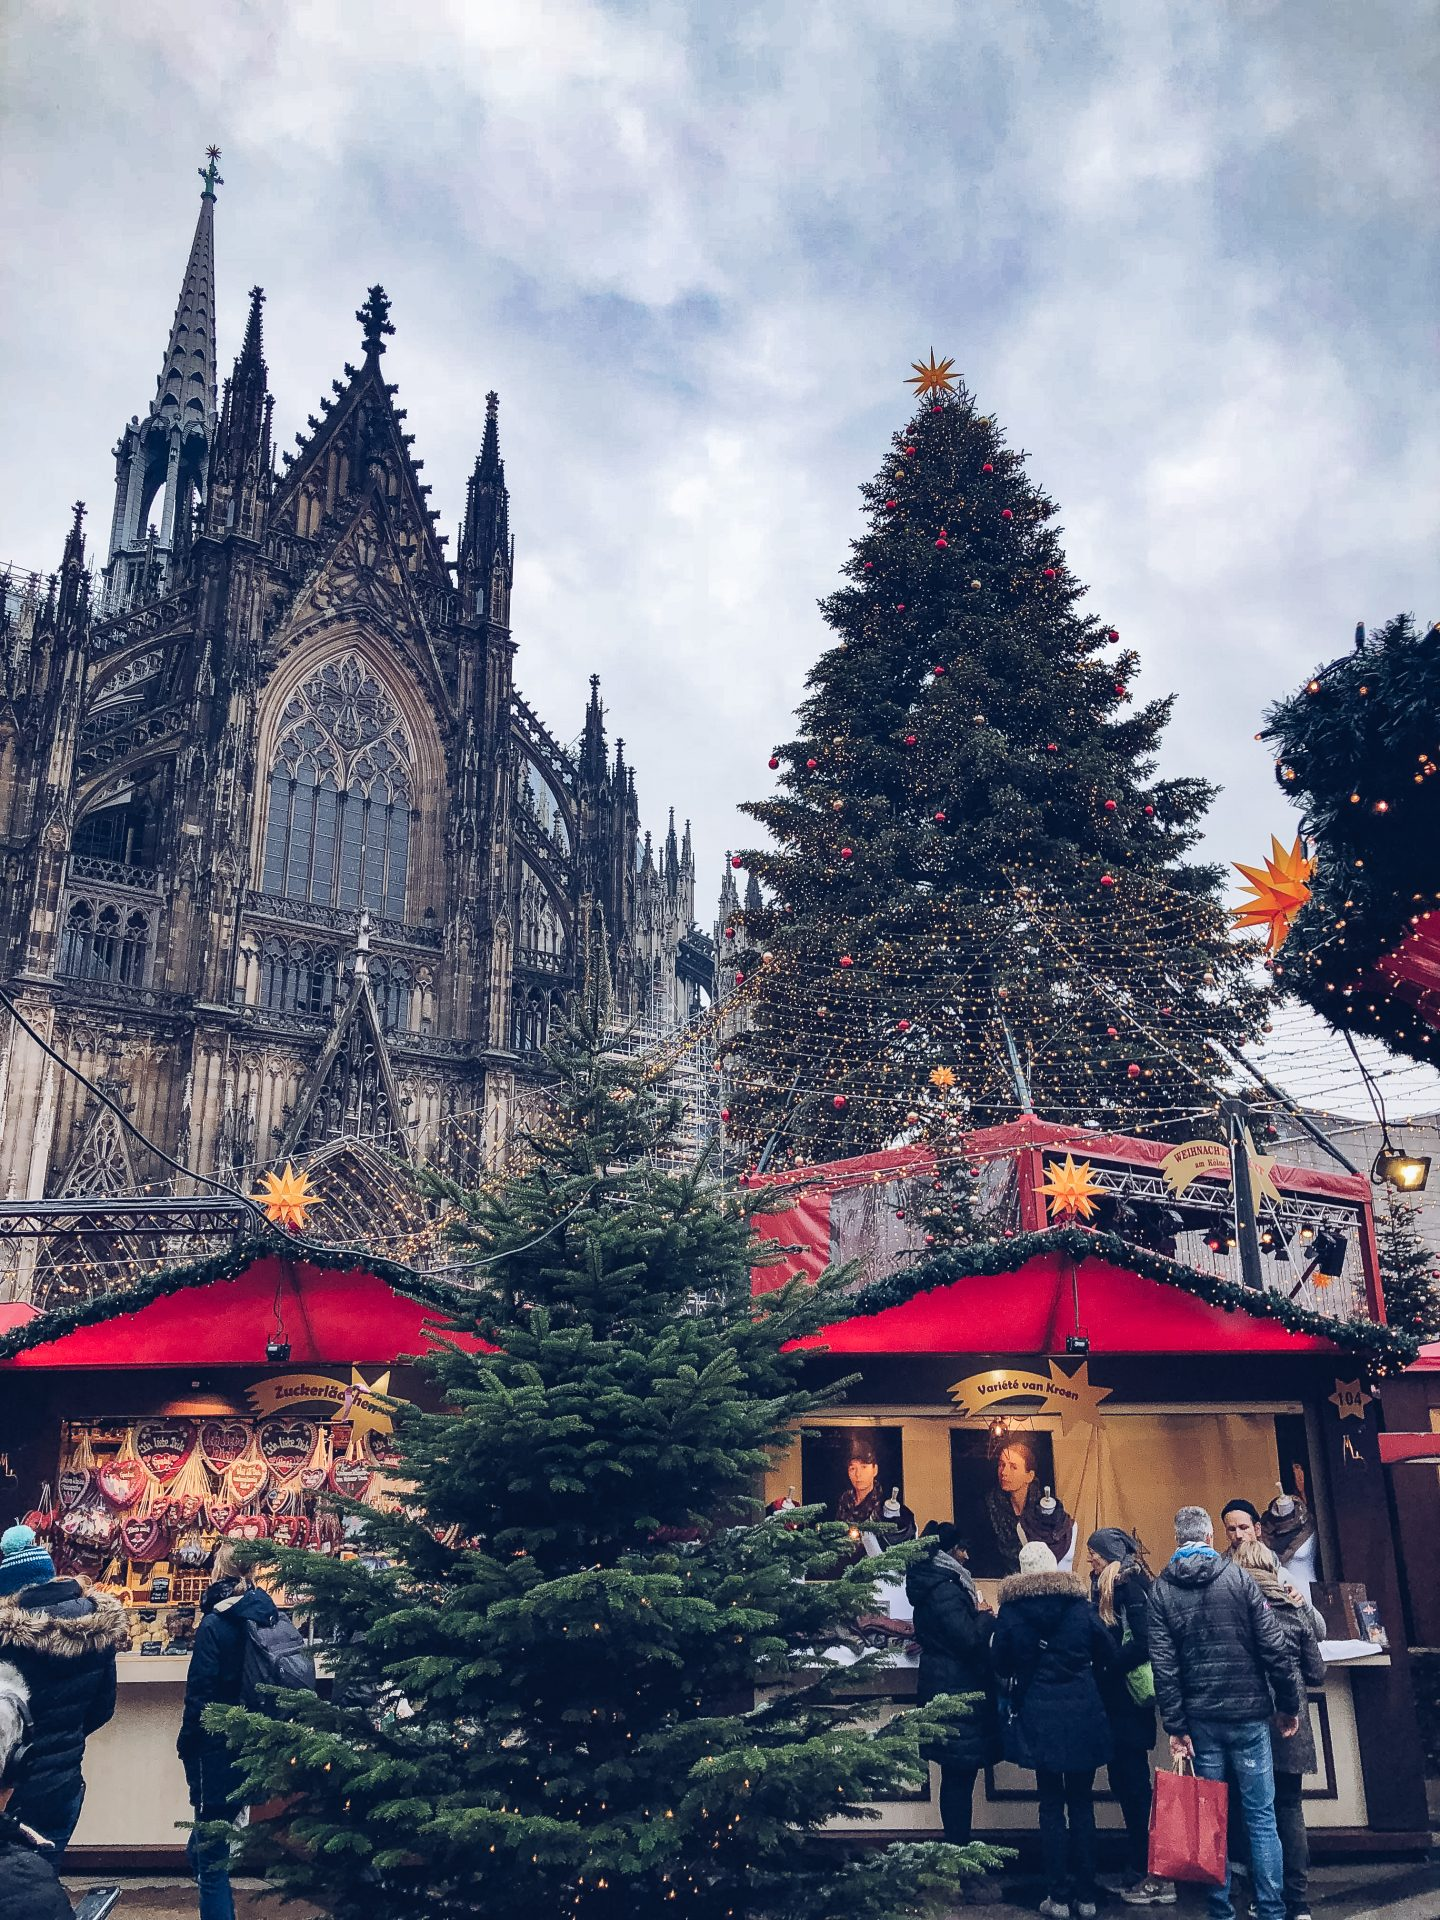 Cologne Cathedral Christmas Market during the day